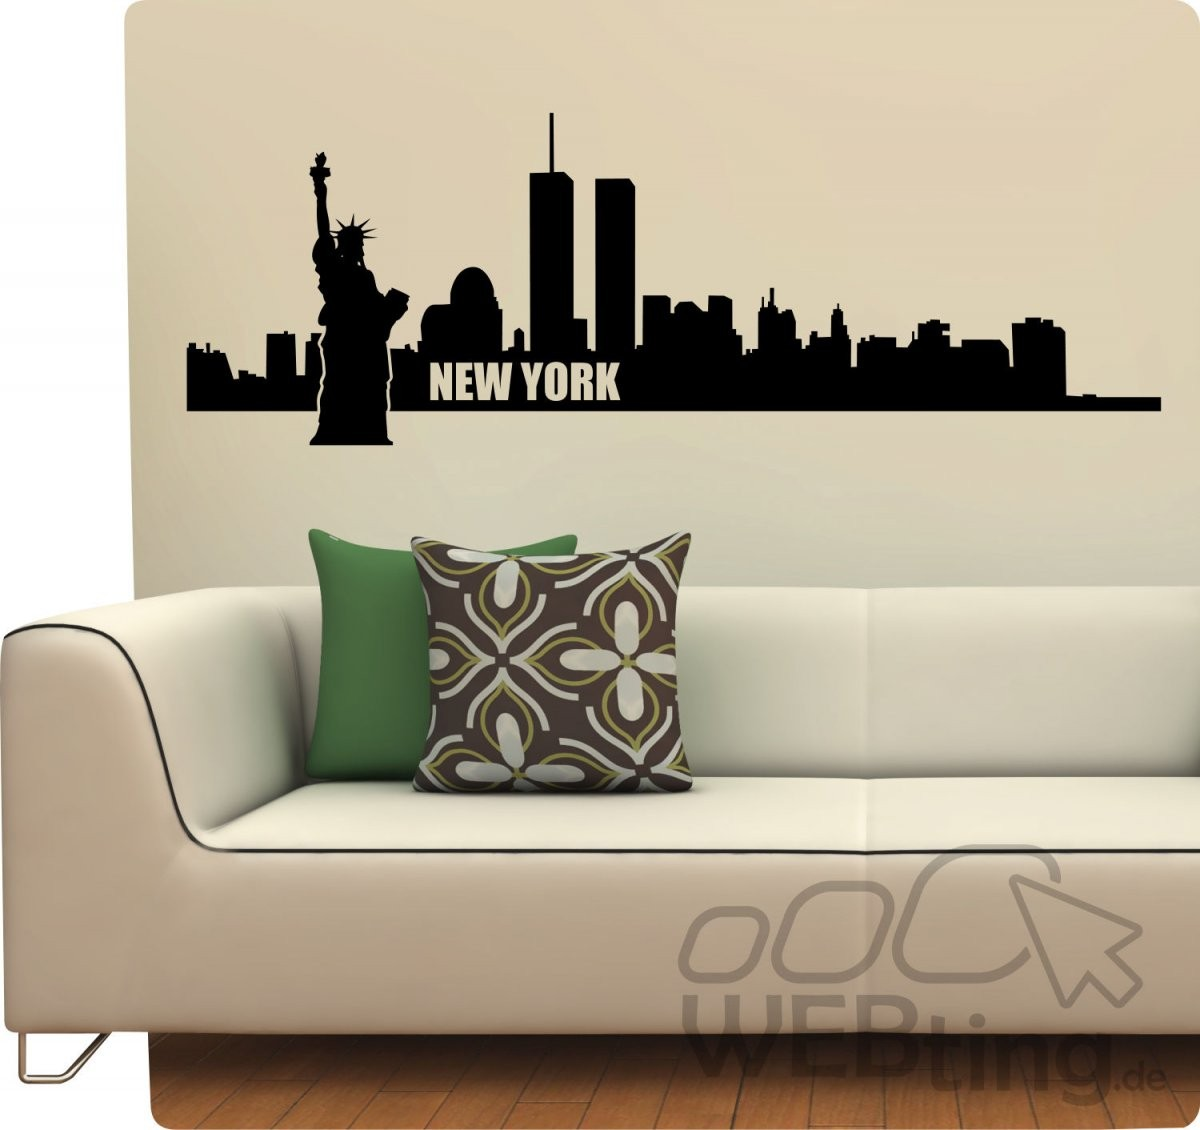 Xxl Wandtattoo Skyline New York Usa Wandaufkleber Aufkleber Sticker von Skyline New York Wandtattoo Photo